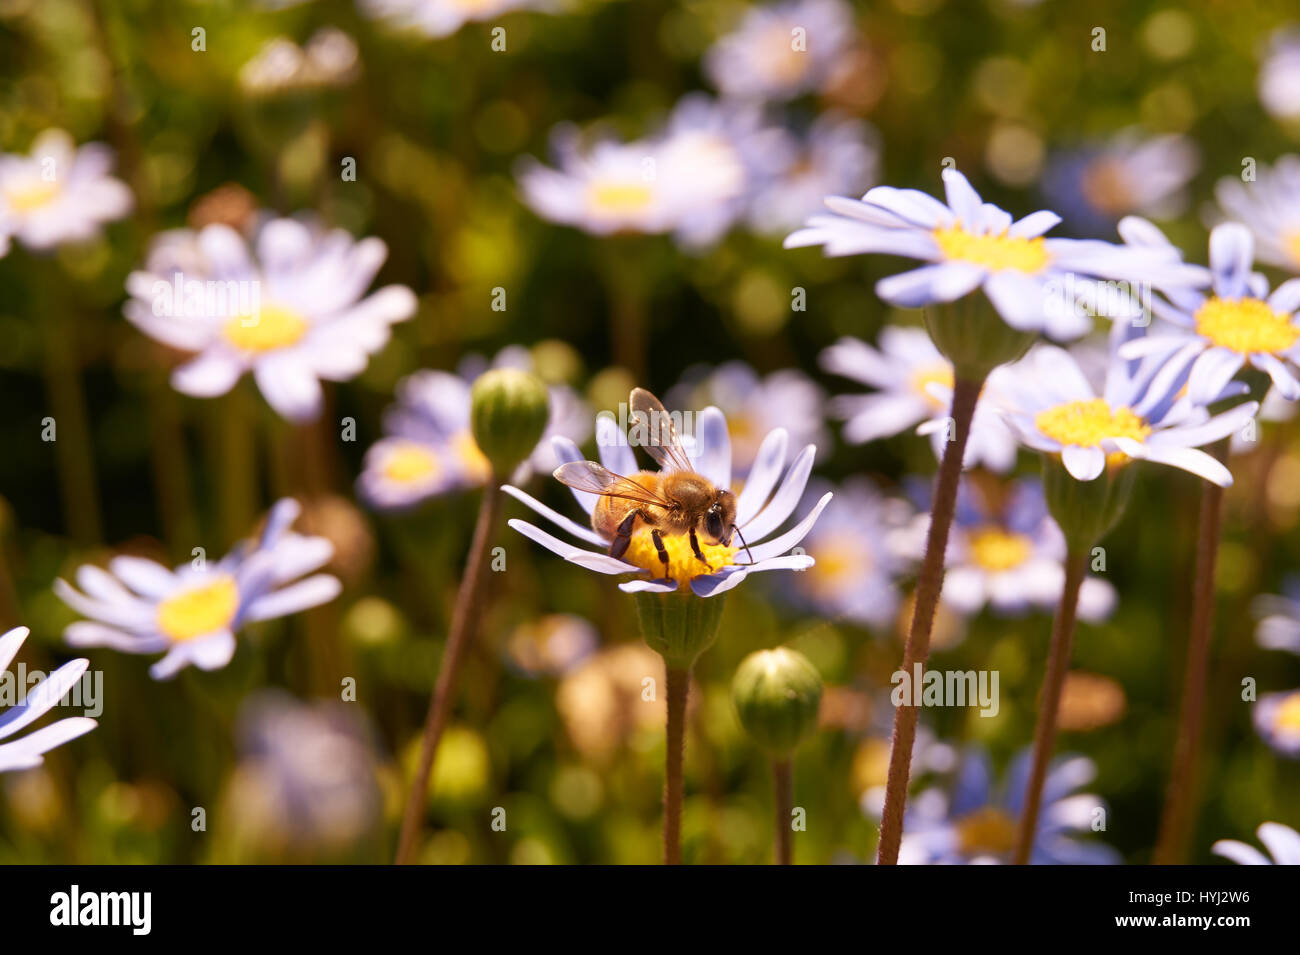 close up of bee on daisy - Stock Image